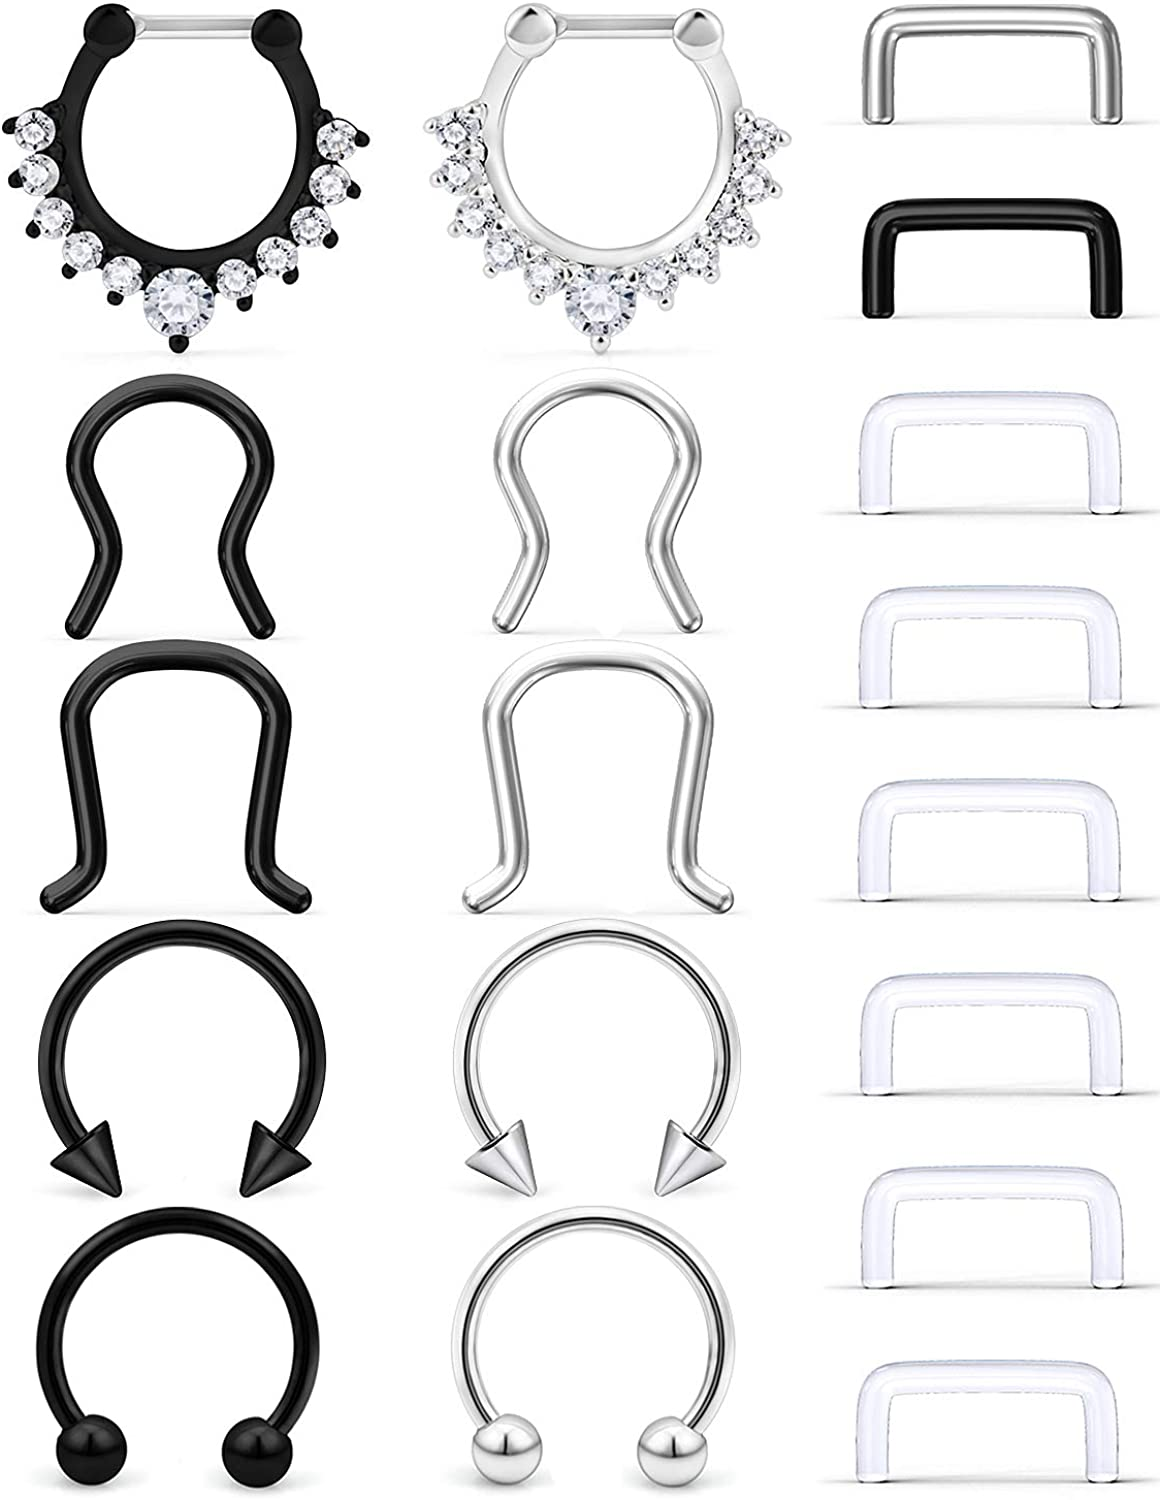 SCERRING 16G Septum Jewelry Stainless Steel Hinged Seamless Nose Hoop Ring Cartilage Daith Tragus Clicker Rings Retainer Body Piercing Jewelry 18PCS